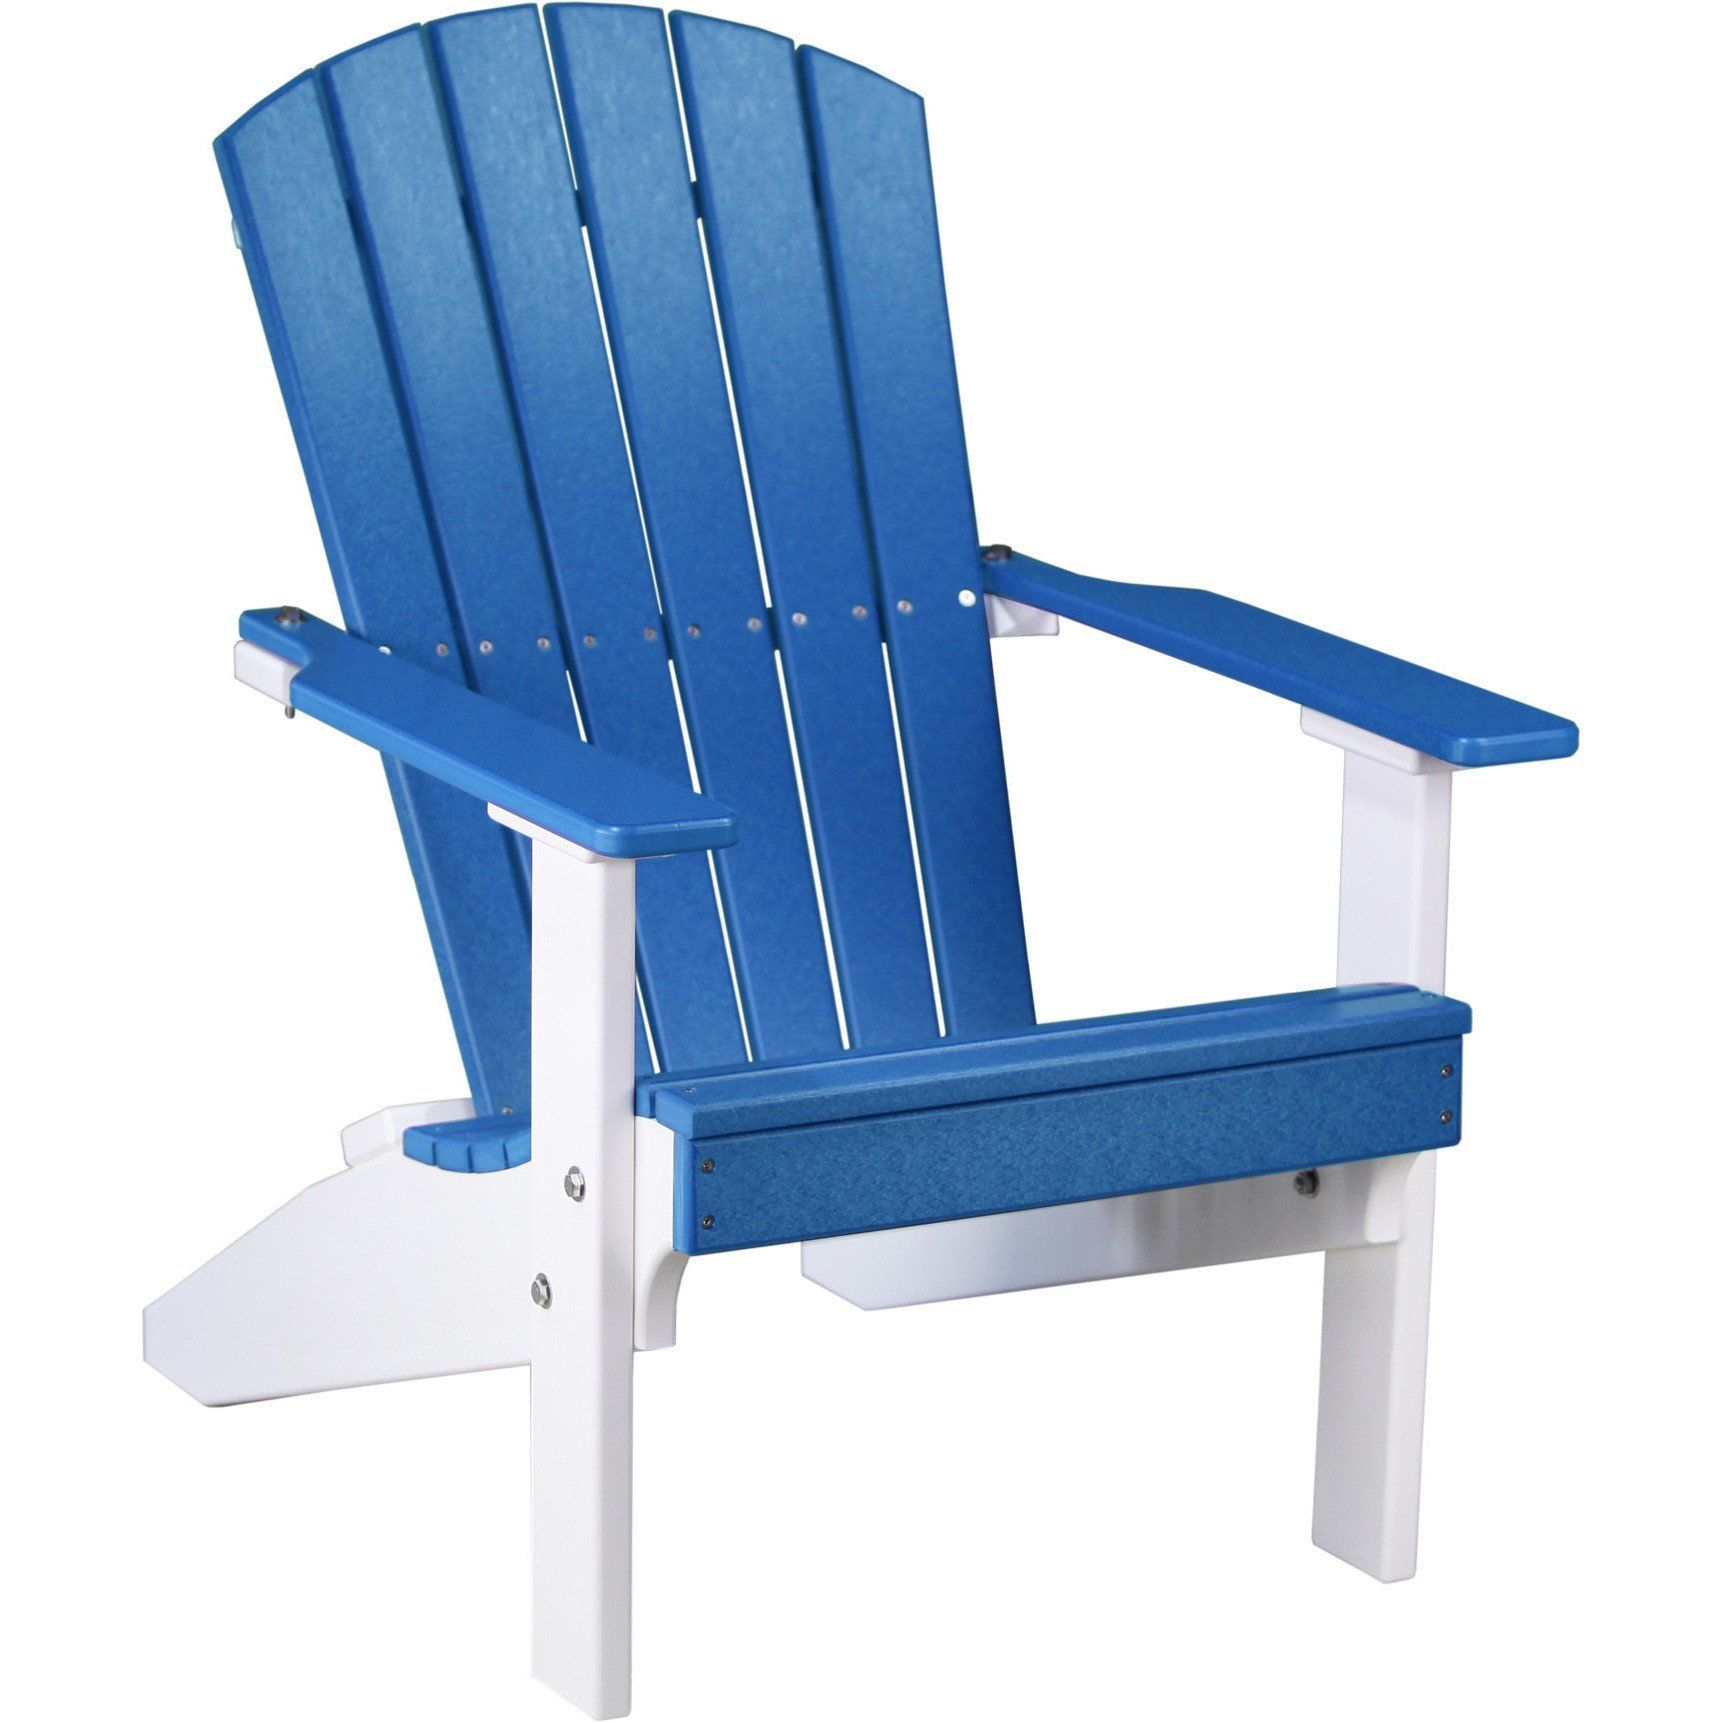 LuxCraft Recycled Plastic Lakeside Adirondack Chair